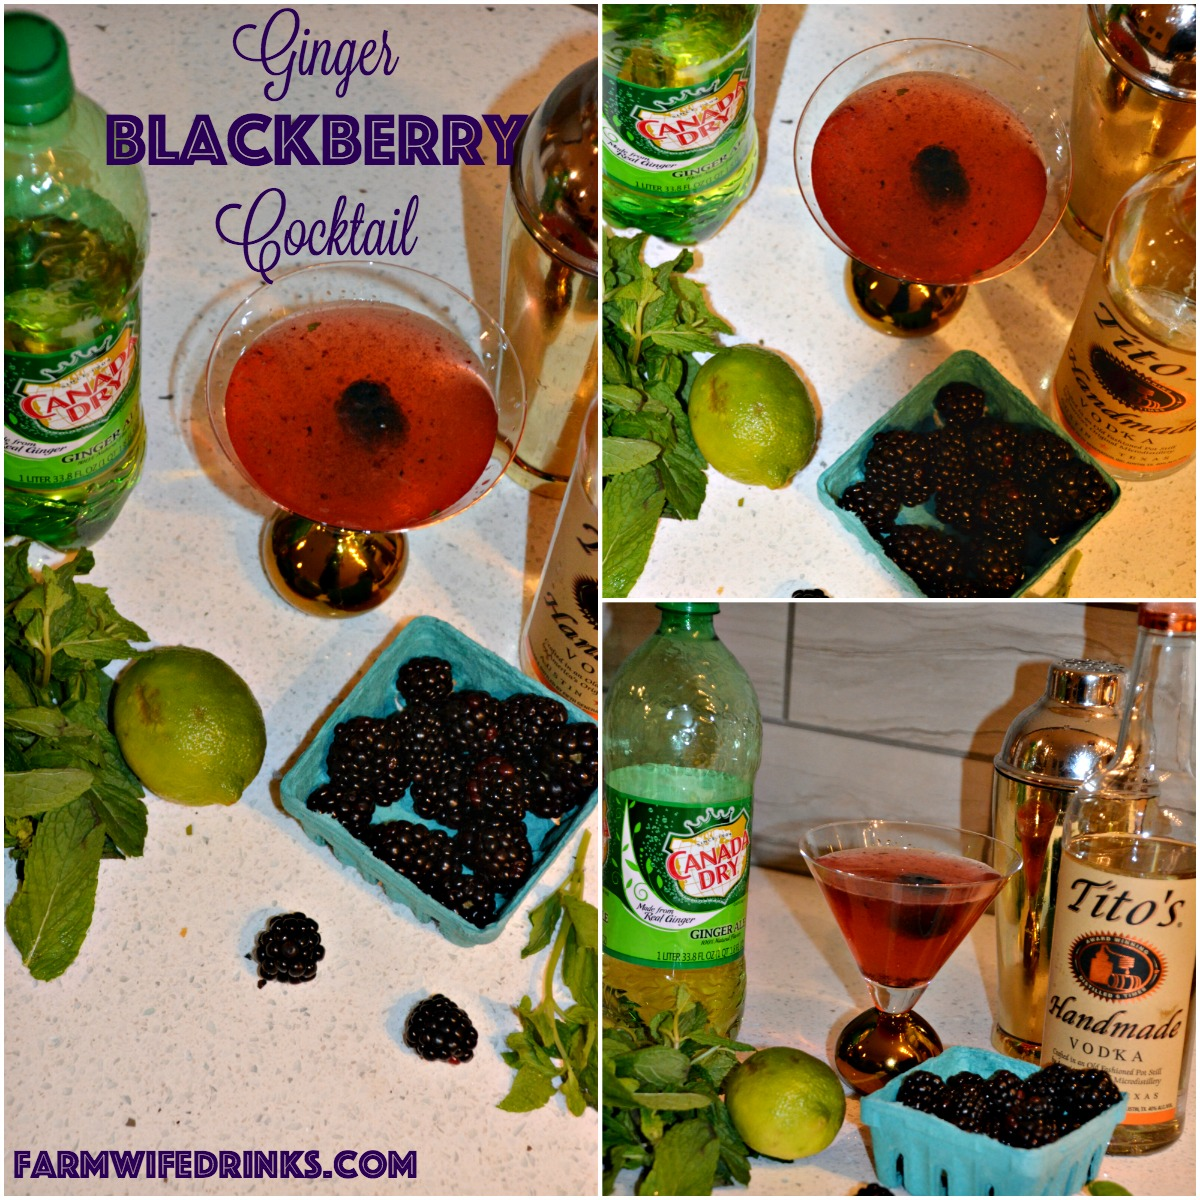 This ginger blackberry cocktail is a simple vodka cocktail recipe. No fancy, hard to find ingredients. Just simple flavors combining for a refreshing drink.